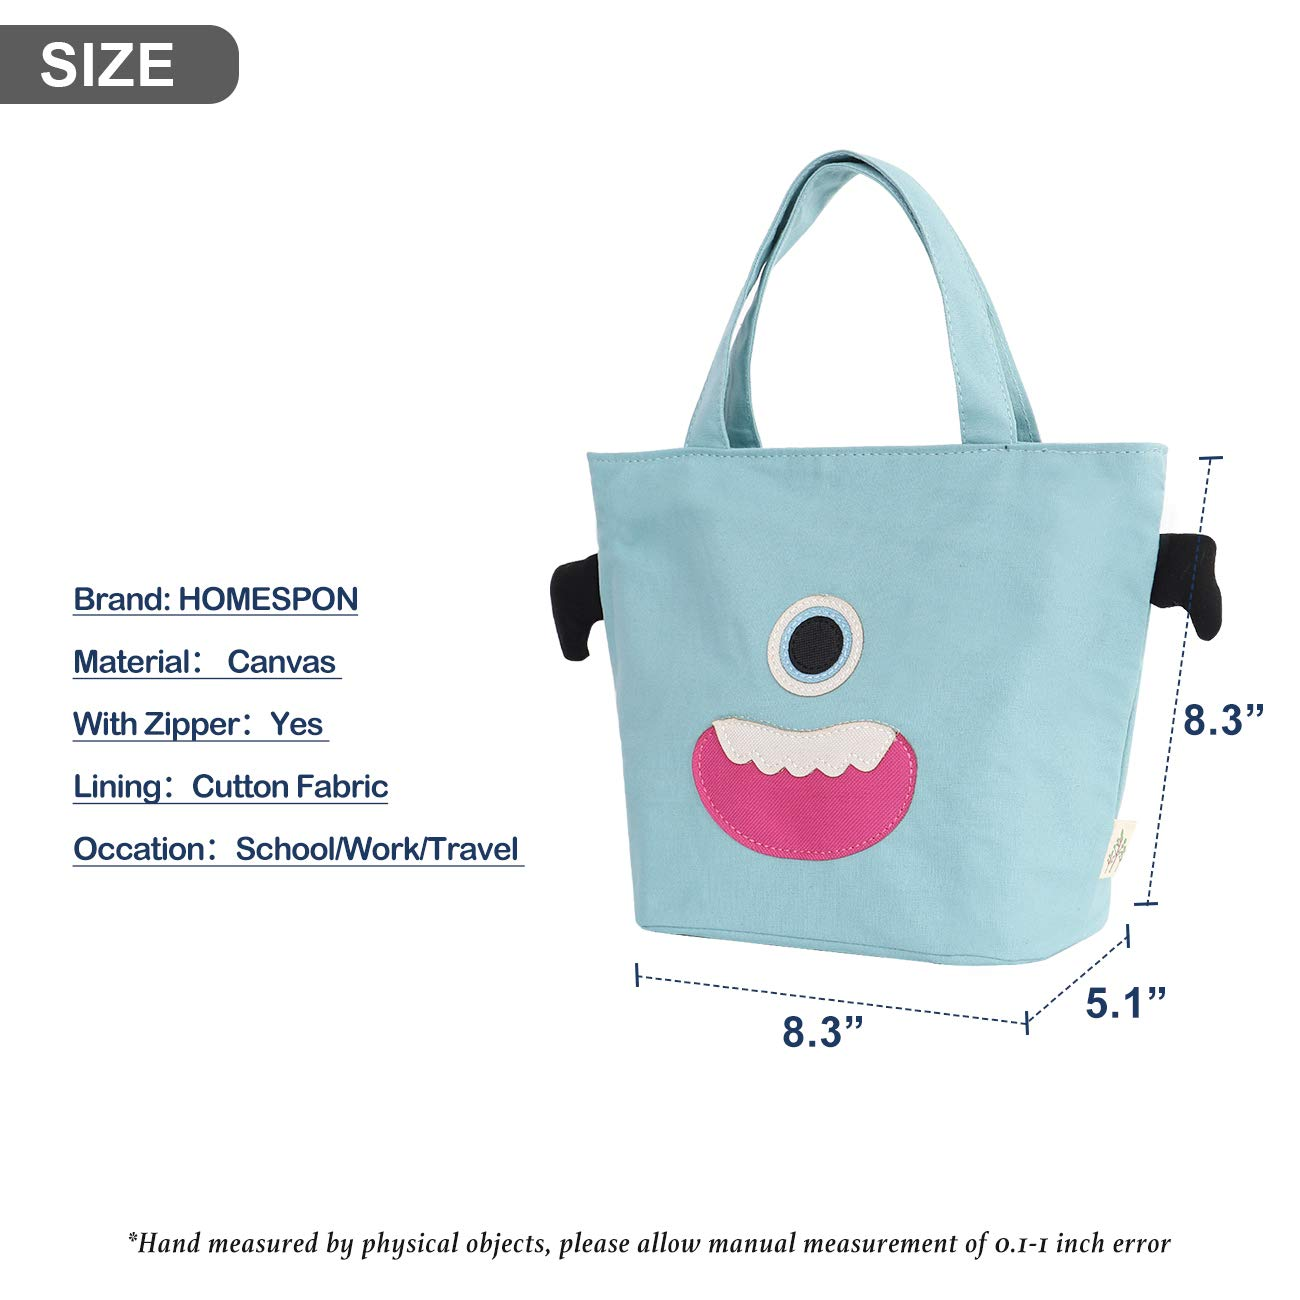 Outdoor,grey Homespon Cute Kids Lunch bag Insulated Lunch Tote Reusable Cavans Bag with Cartoon Patterns for Kids,Toddler,Teens for School